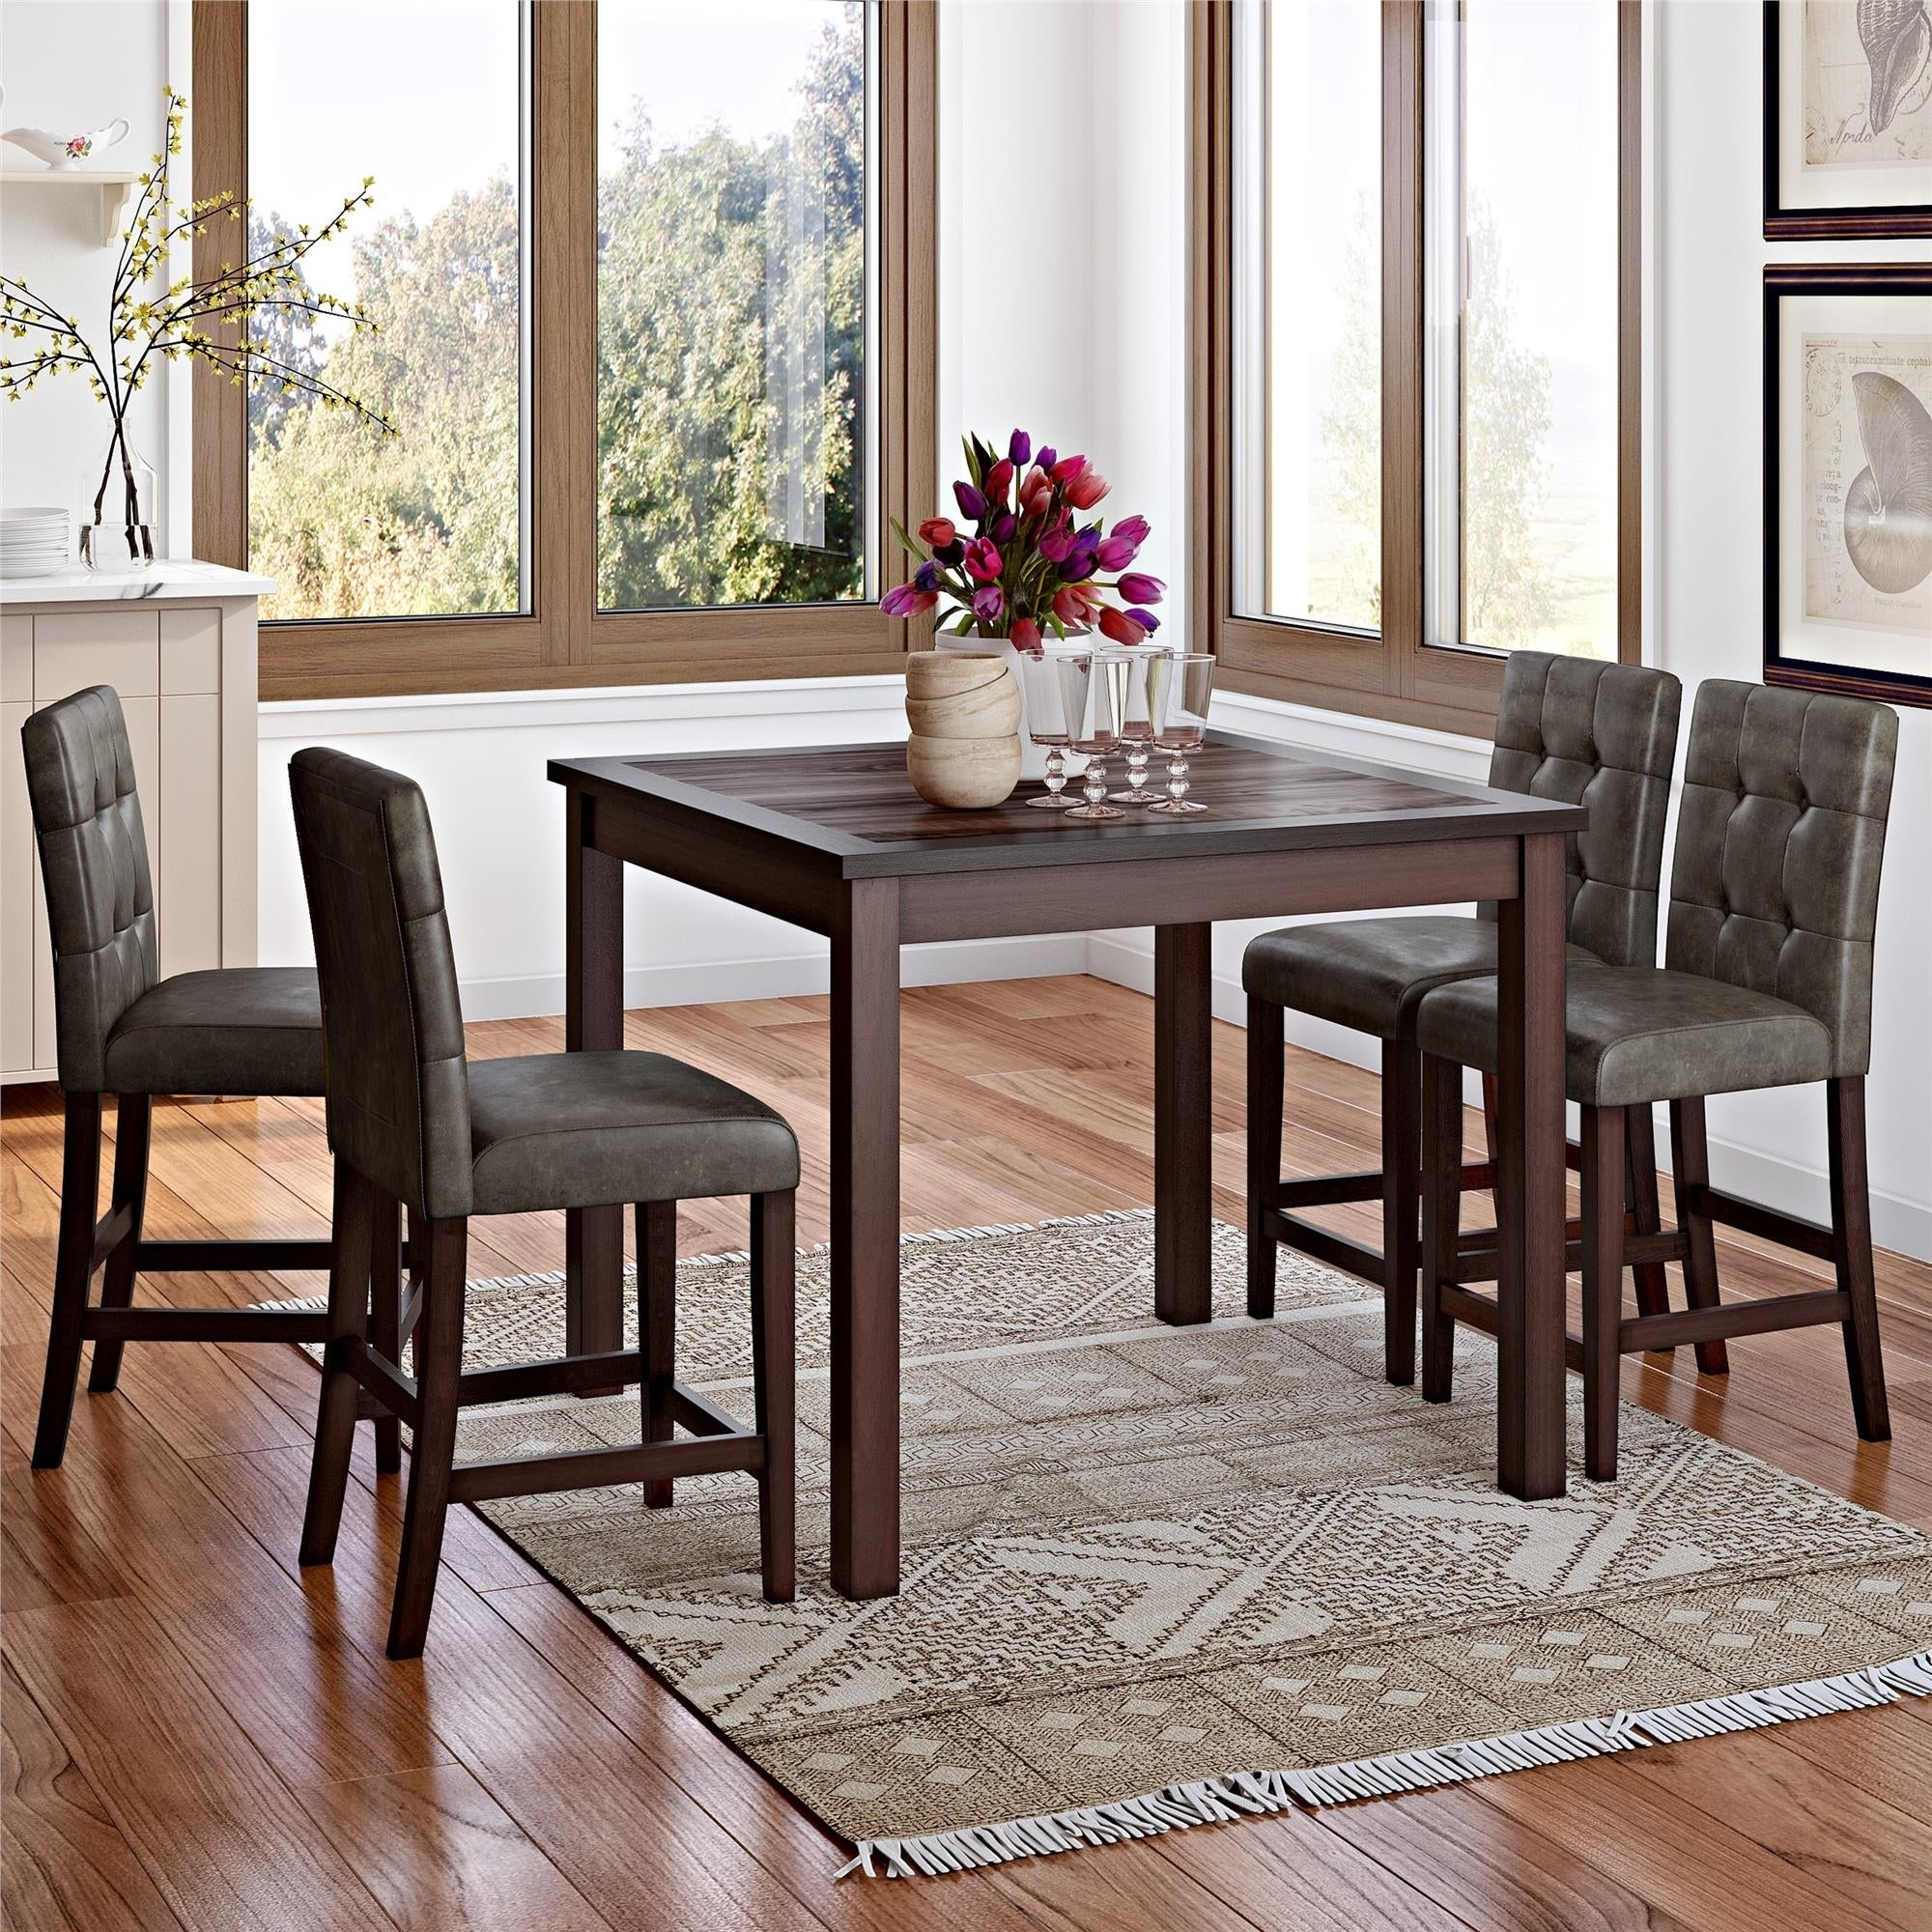 Gracewood Hollow Betancourt Espresso 5 Piece Counter Height Dining Set With Current Bettencourt 3 Piece Counter Height Dining Sets (Photo 19 of 20)